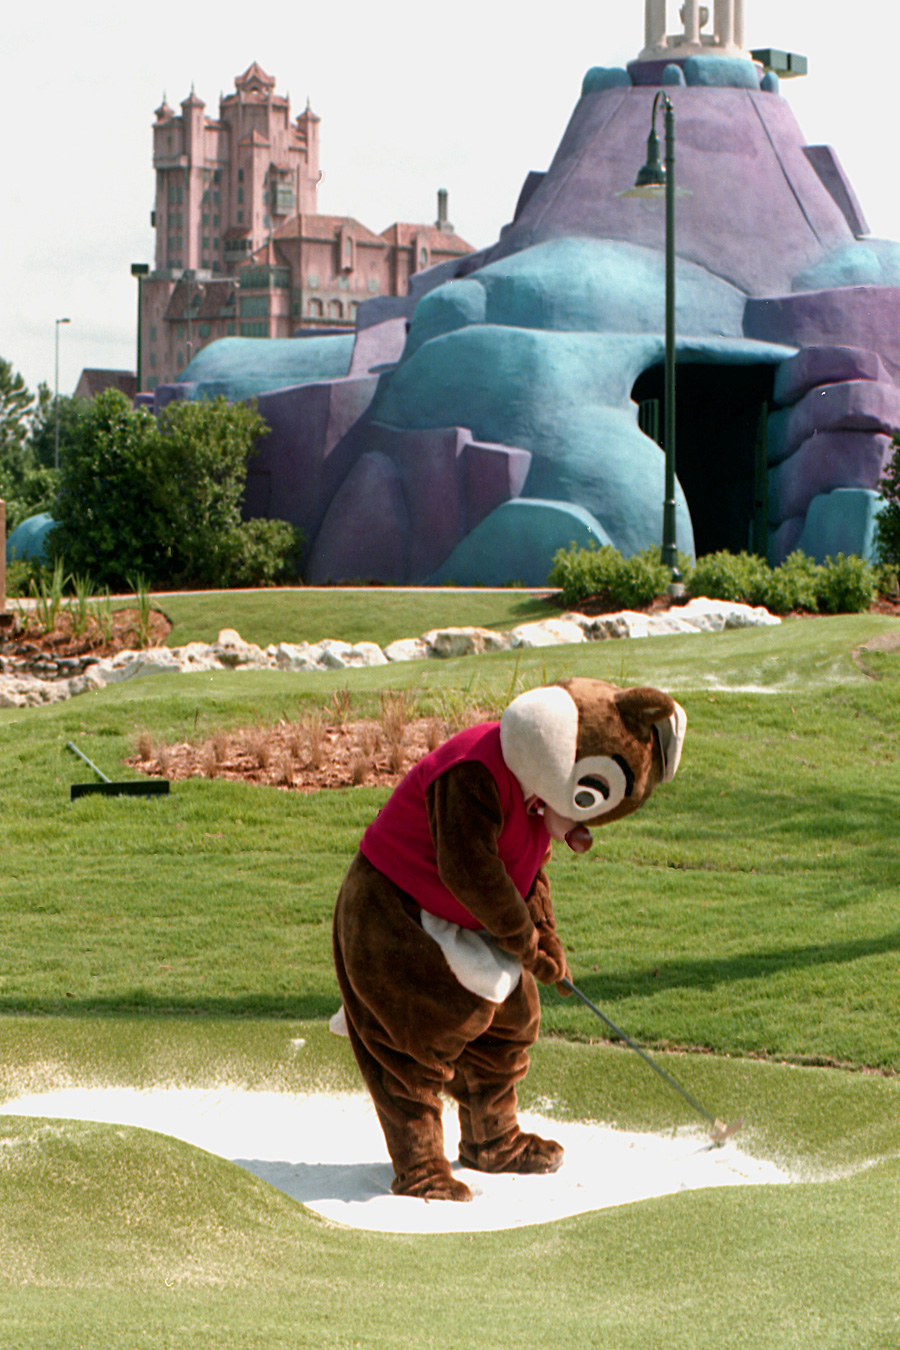 News Fantasia Gardens Miniature Golf Has Officially Re Opened In Disney World The Disney Food Blog